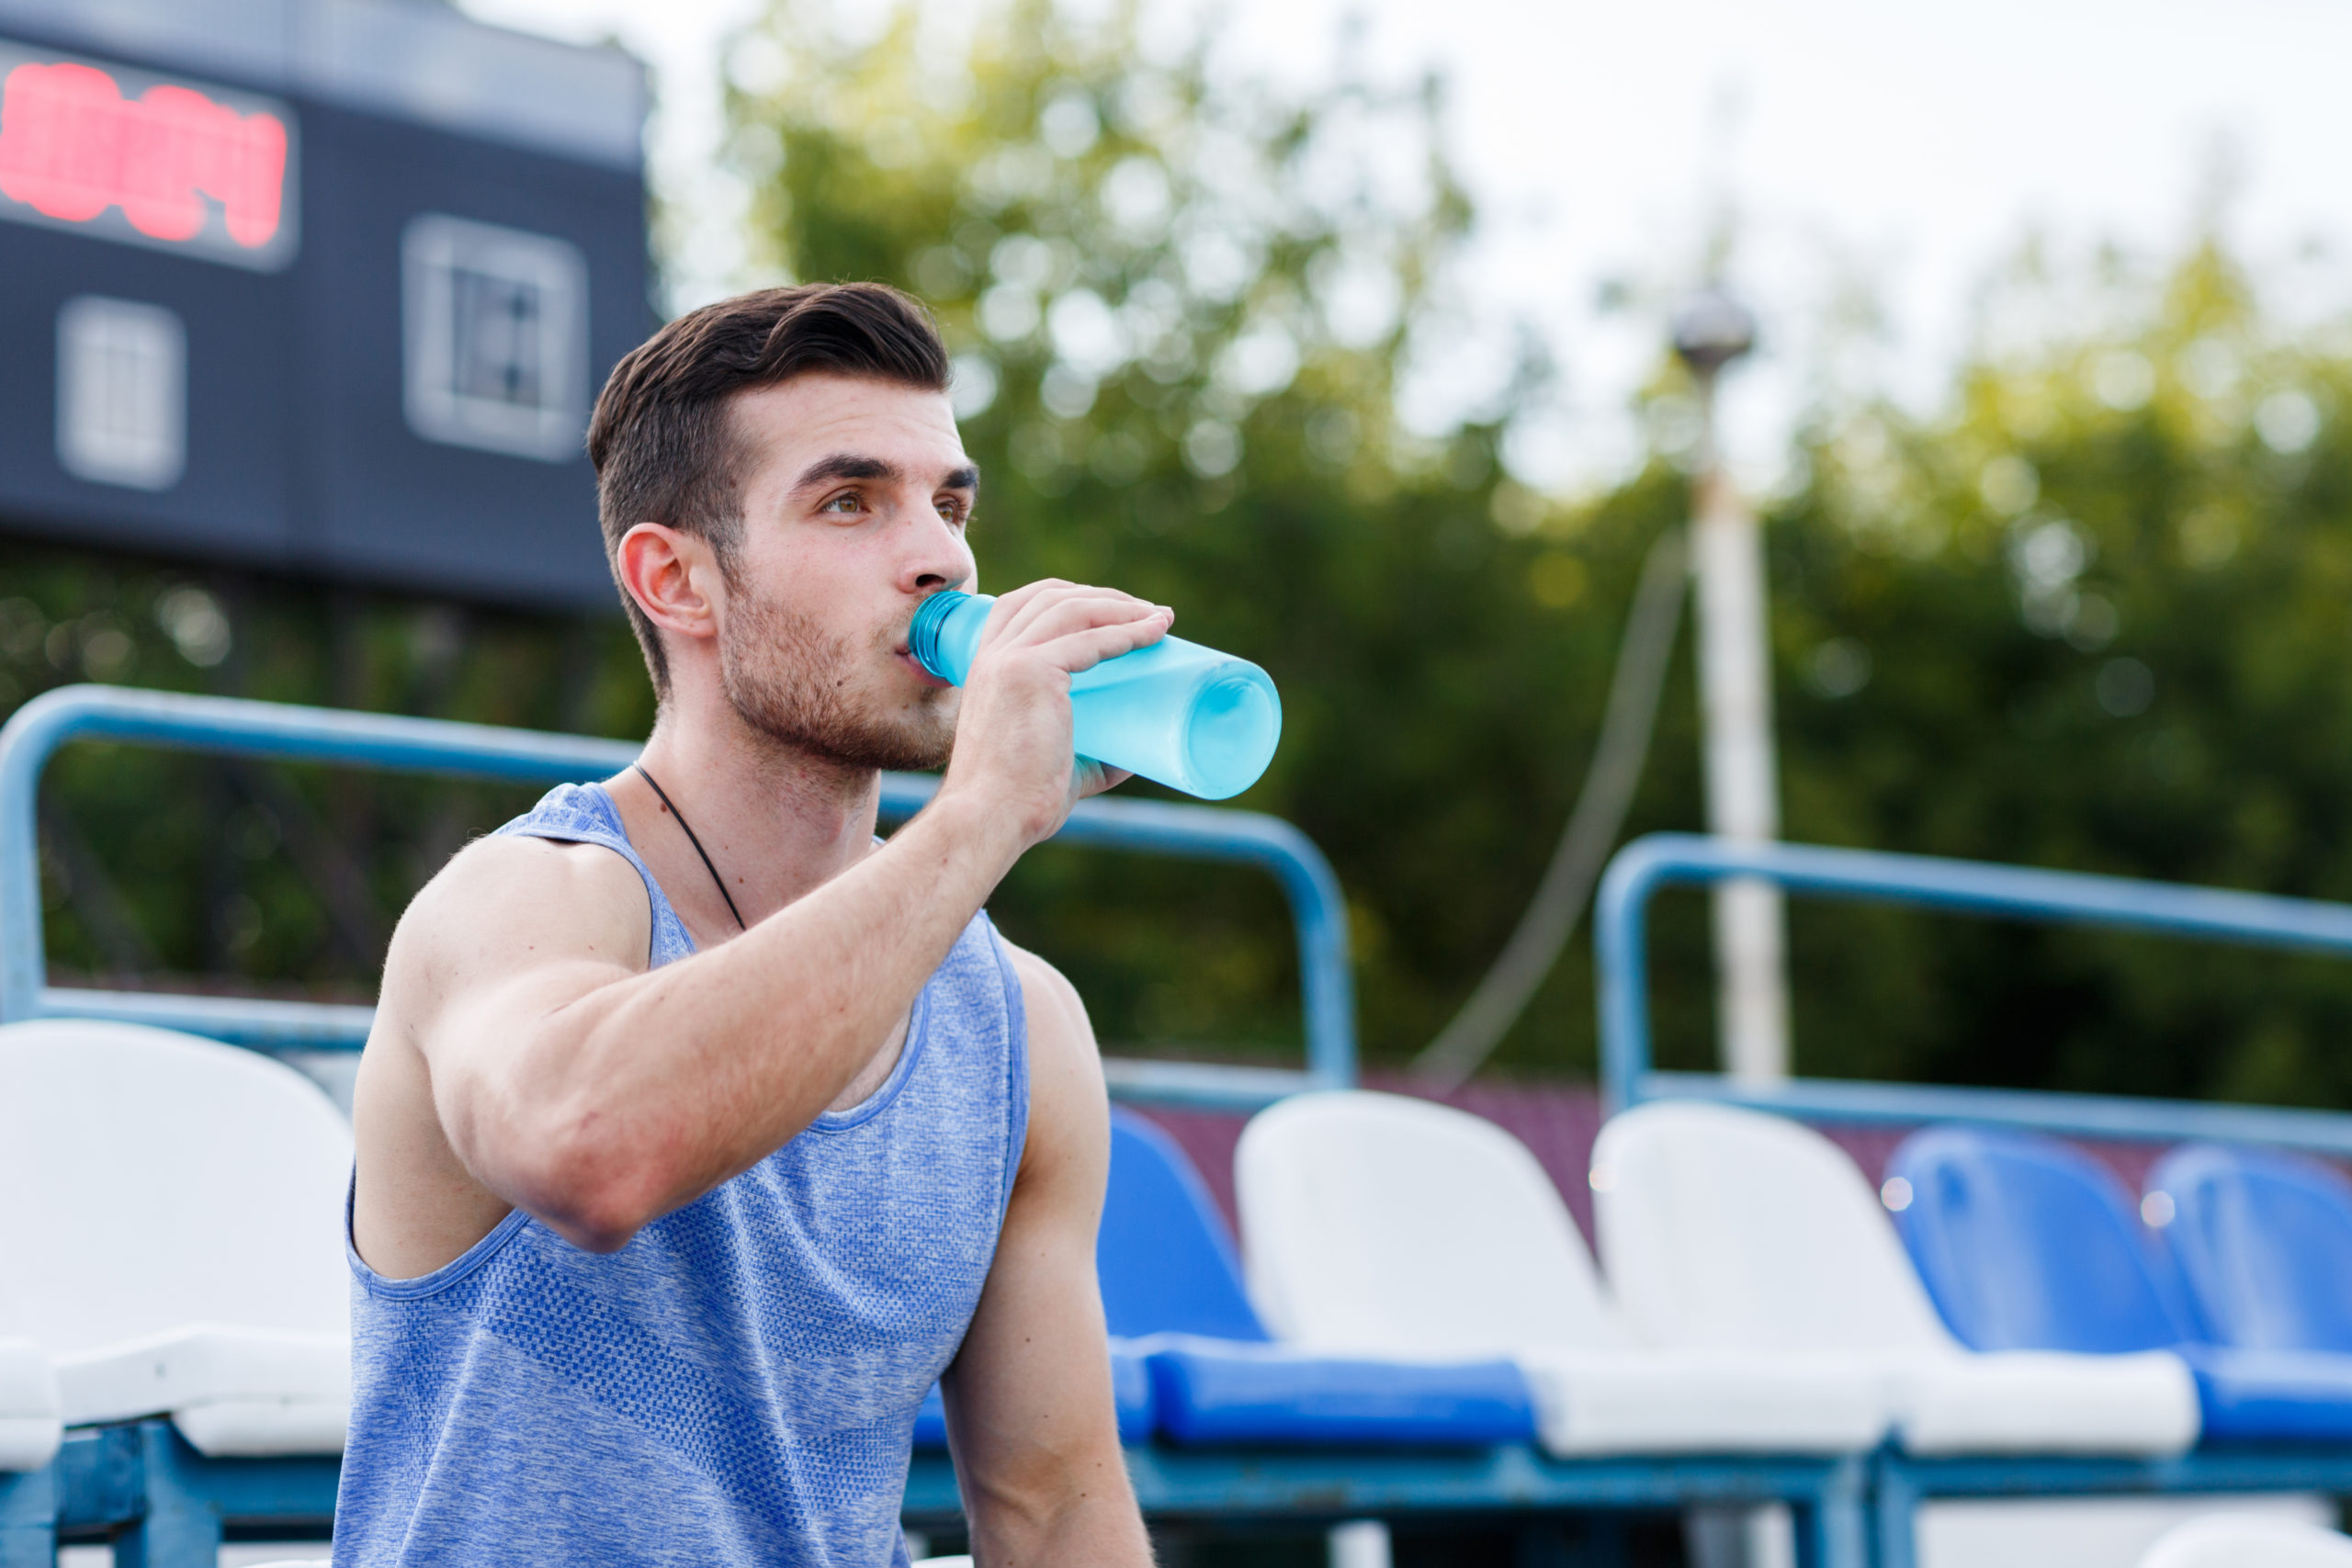 Man Hydrating Exercise Outdoors